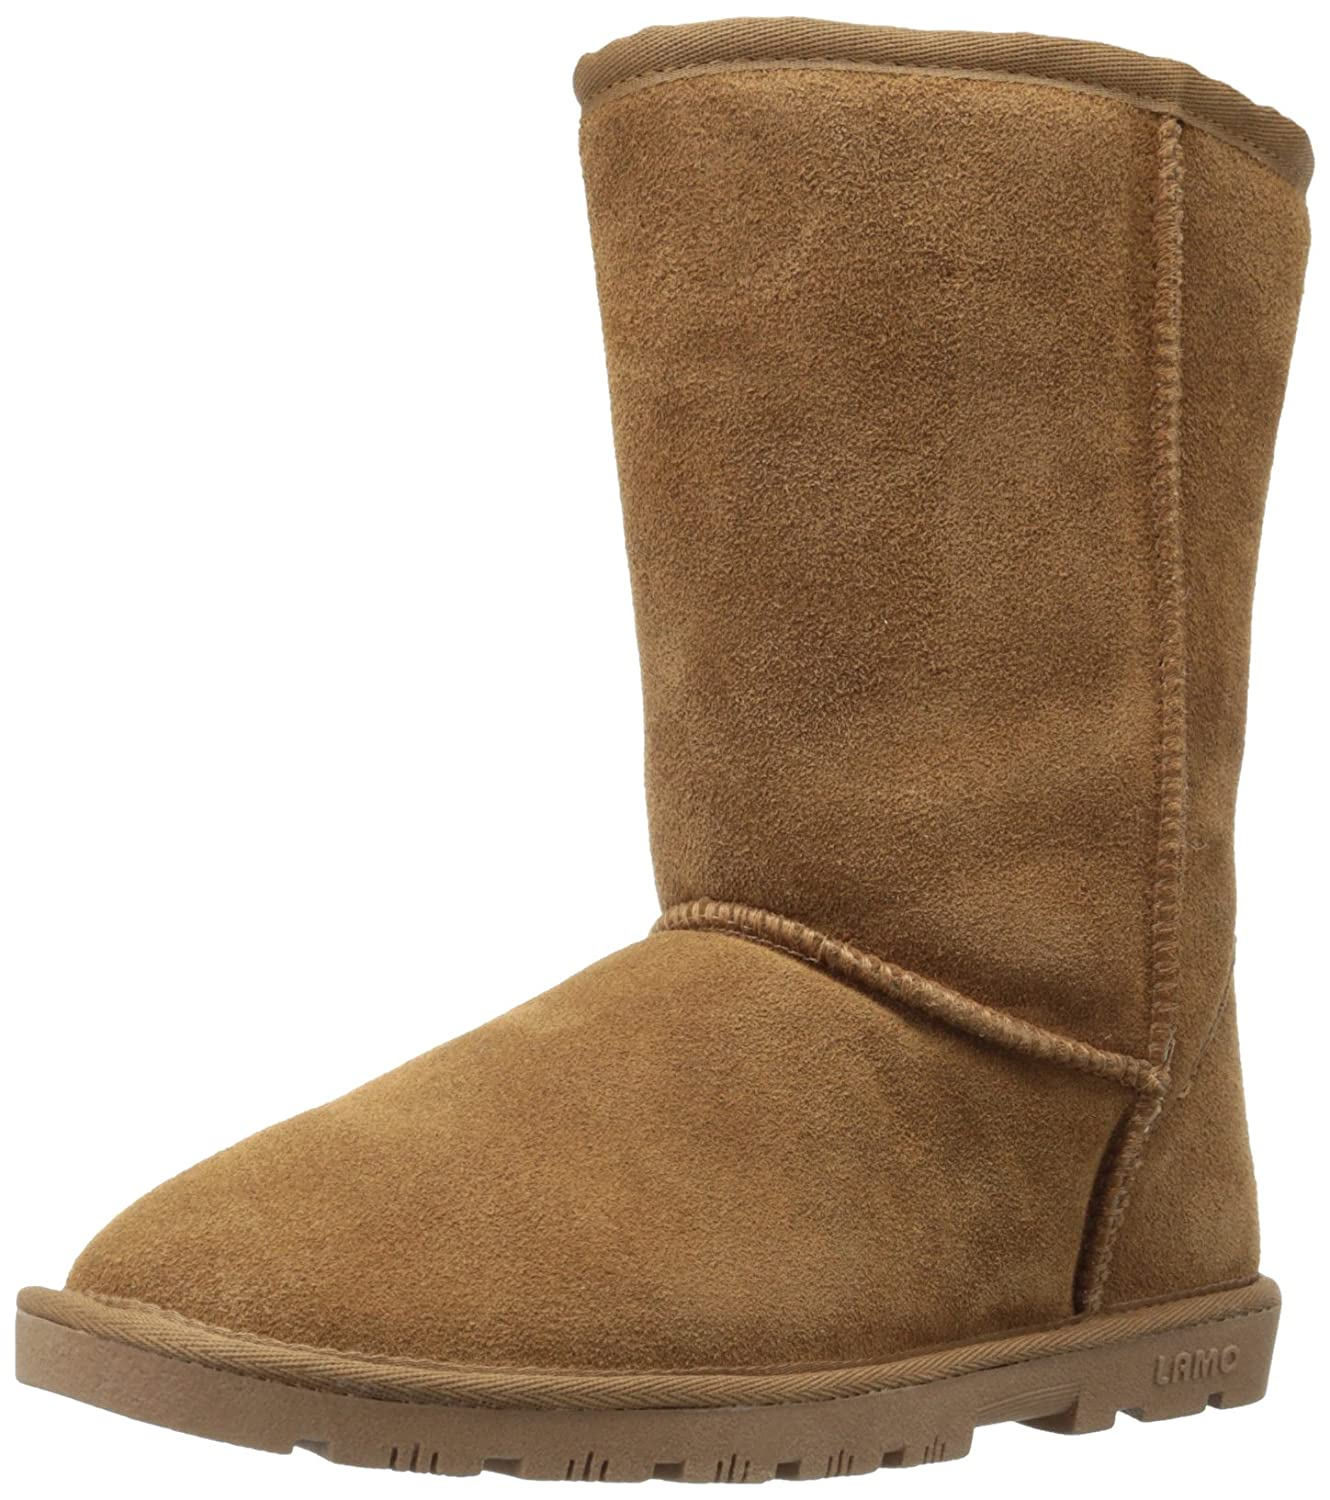 d9813c700b7 Amazon.com | Lamo Women's 9-Inch Flat Boot | Mid-Calf